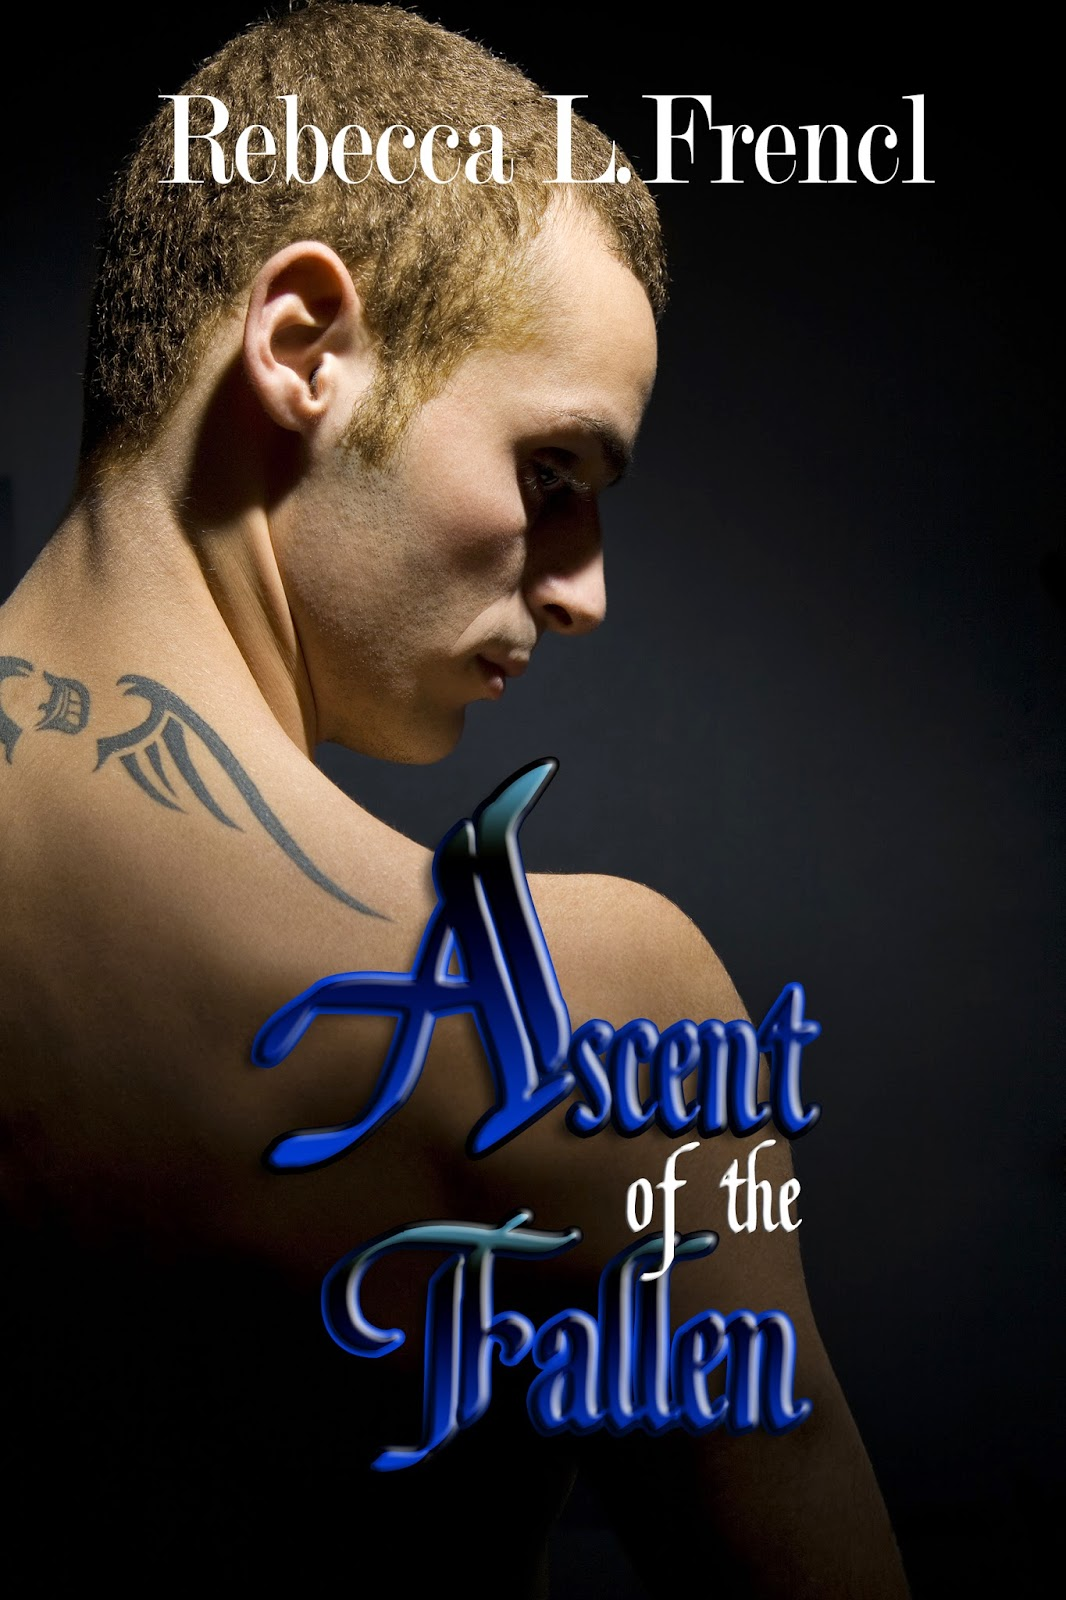 http://www.amazon.com/Ascent-Fallen-Rebecca-L-Frencl-ebook/dp/B00IOTWMV4/ref=sr_1_1?s=books&ie=UTF8&qid=1395777049&sr=1-1&keywords=Ascent+of+the+fallen